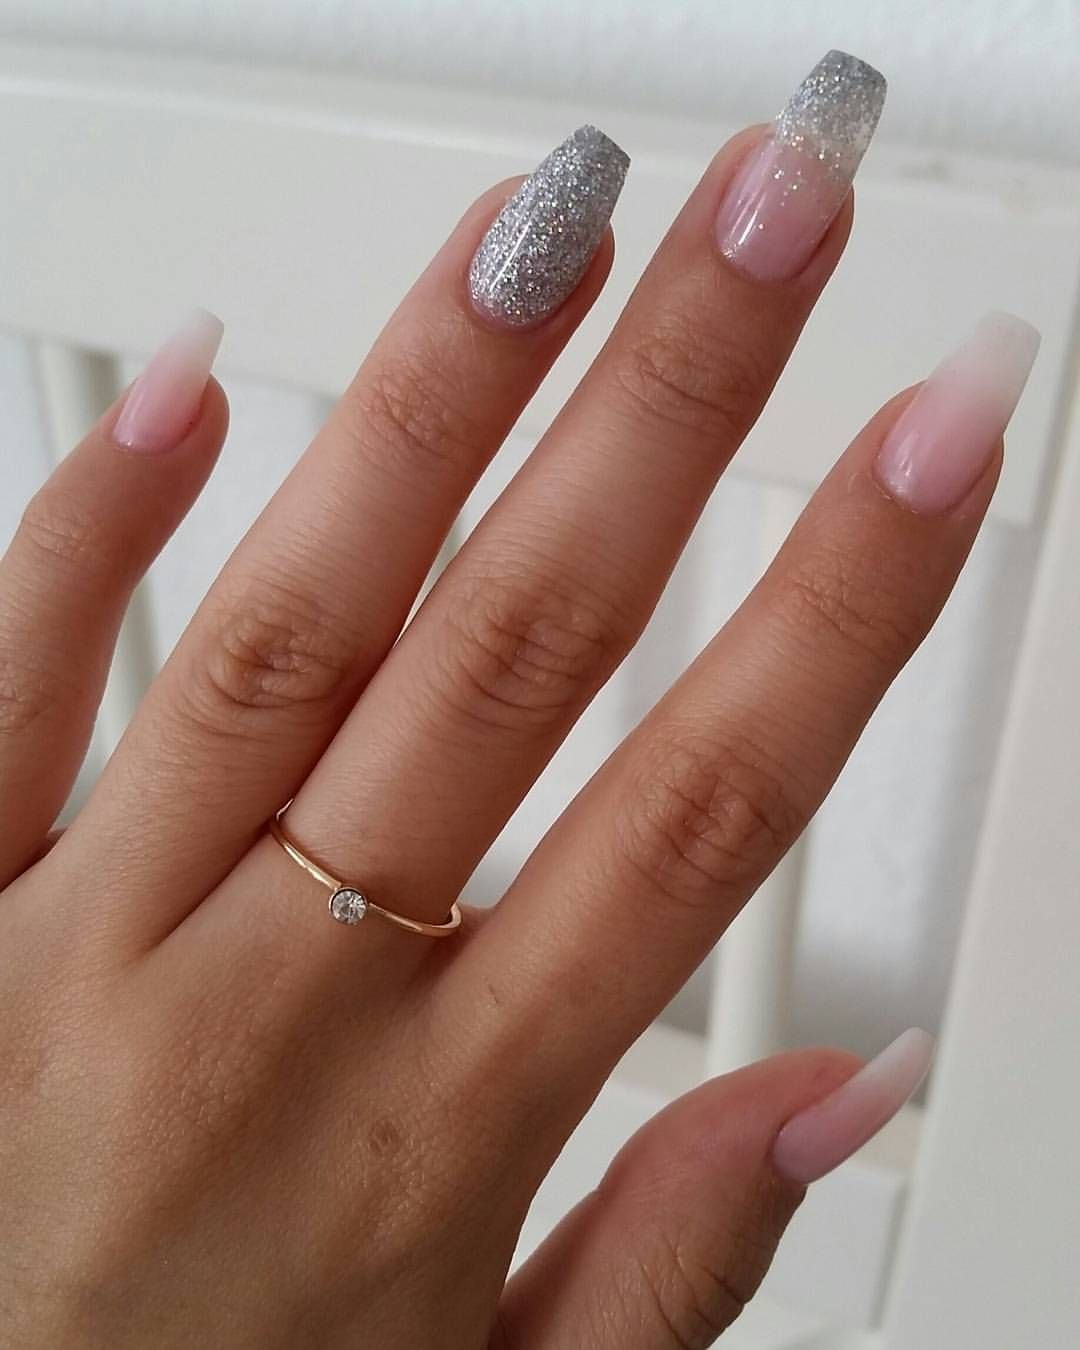 Pin van aalejna op Nails ❤ | Pinterest - Nagel, Kunstnagels en Kunst